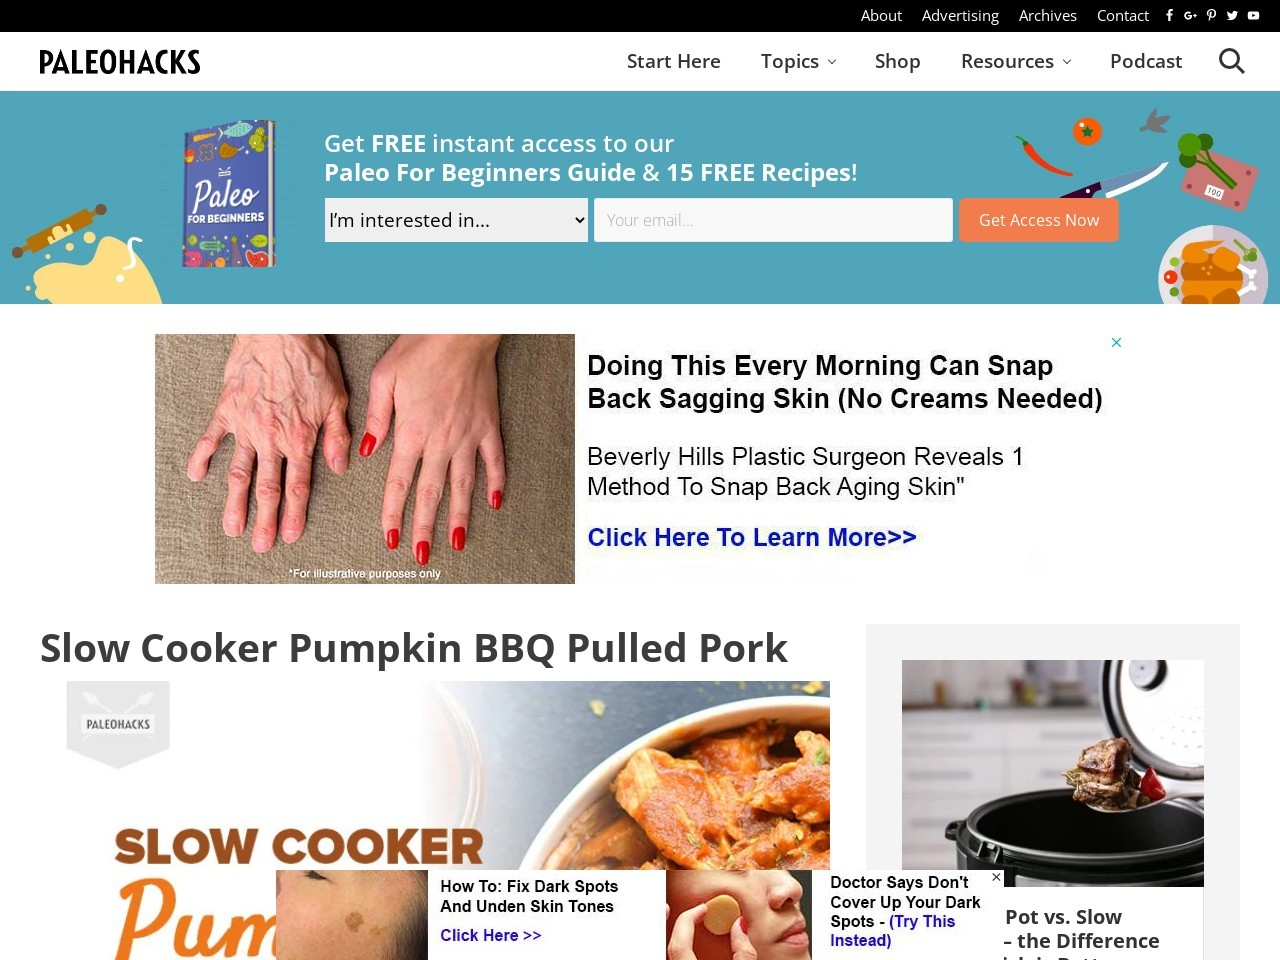 Slow Cooker Pumpkin BBQ Pulled Pork